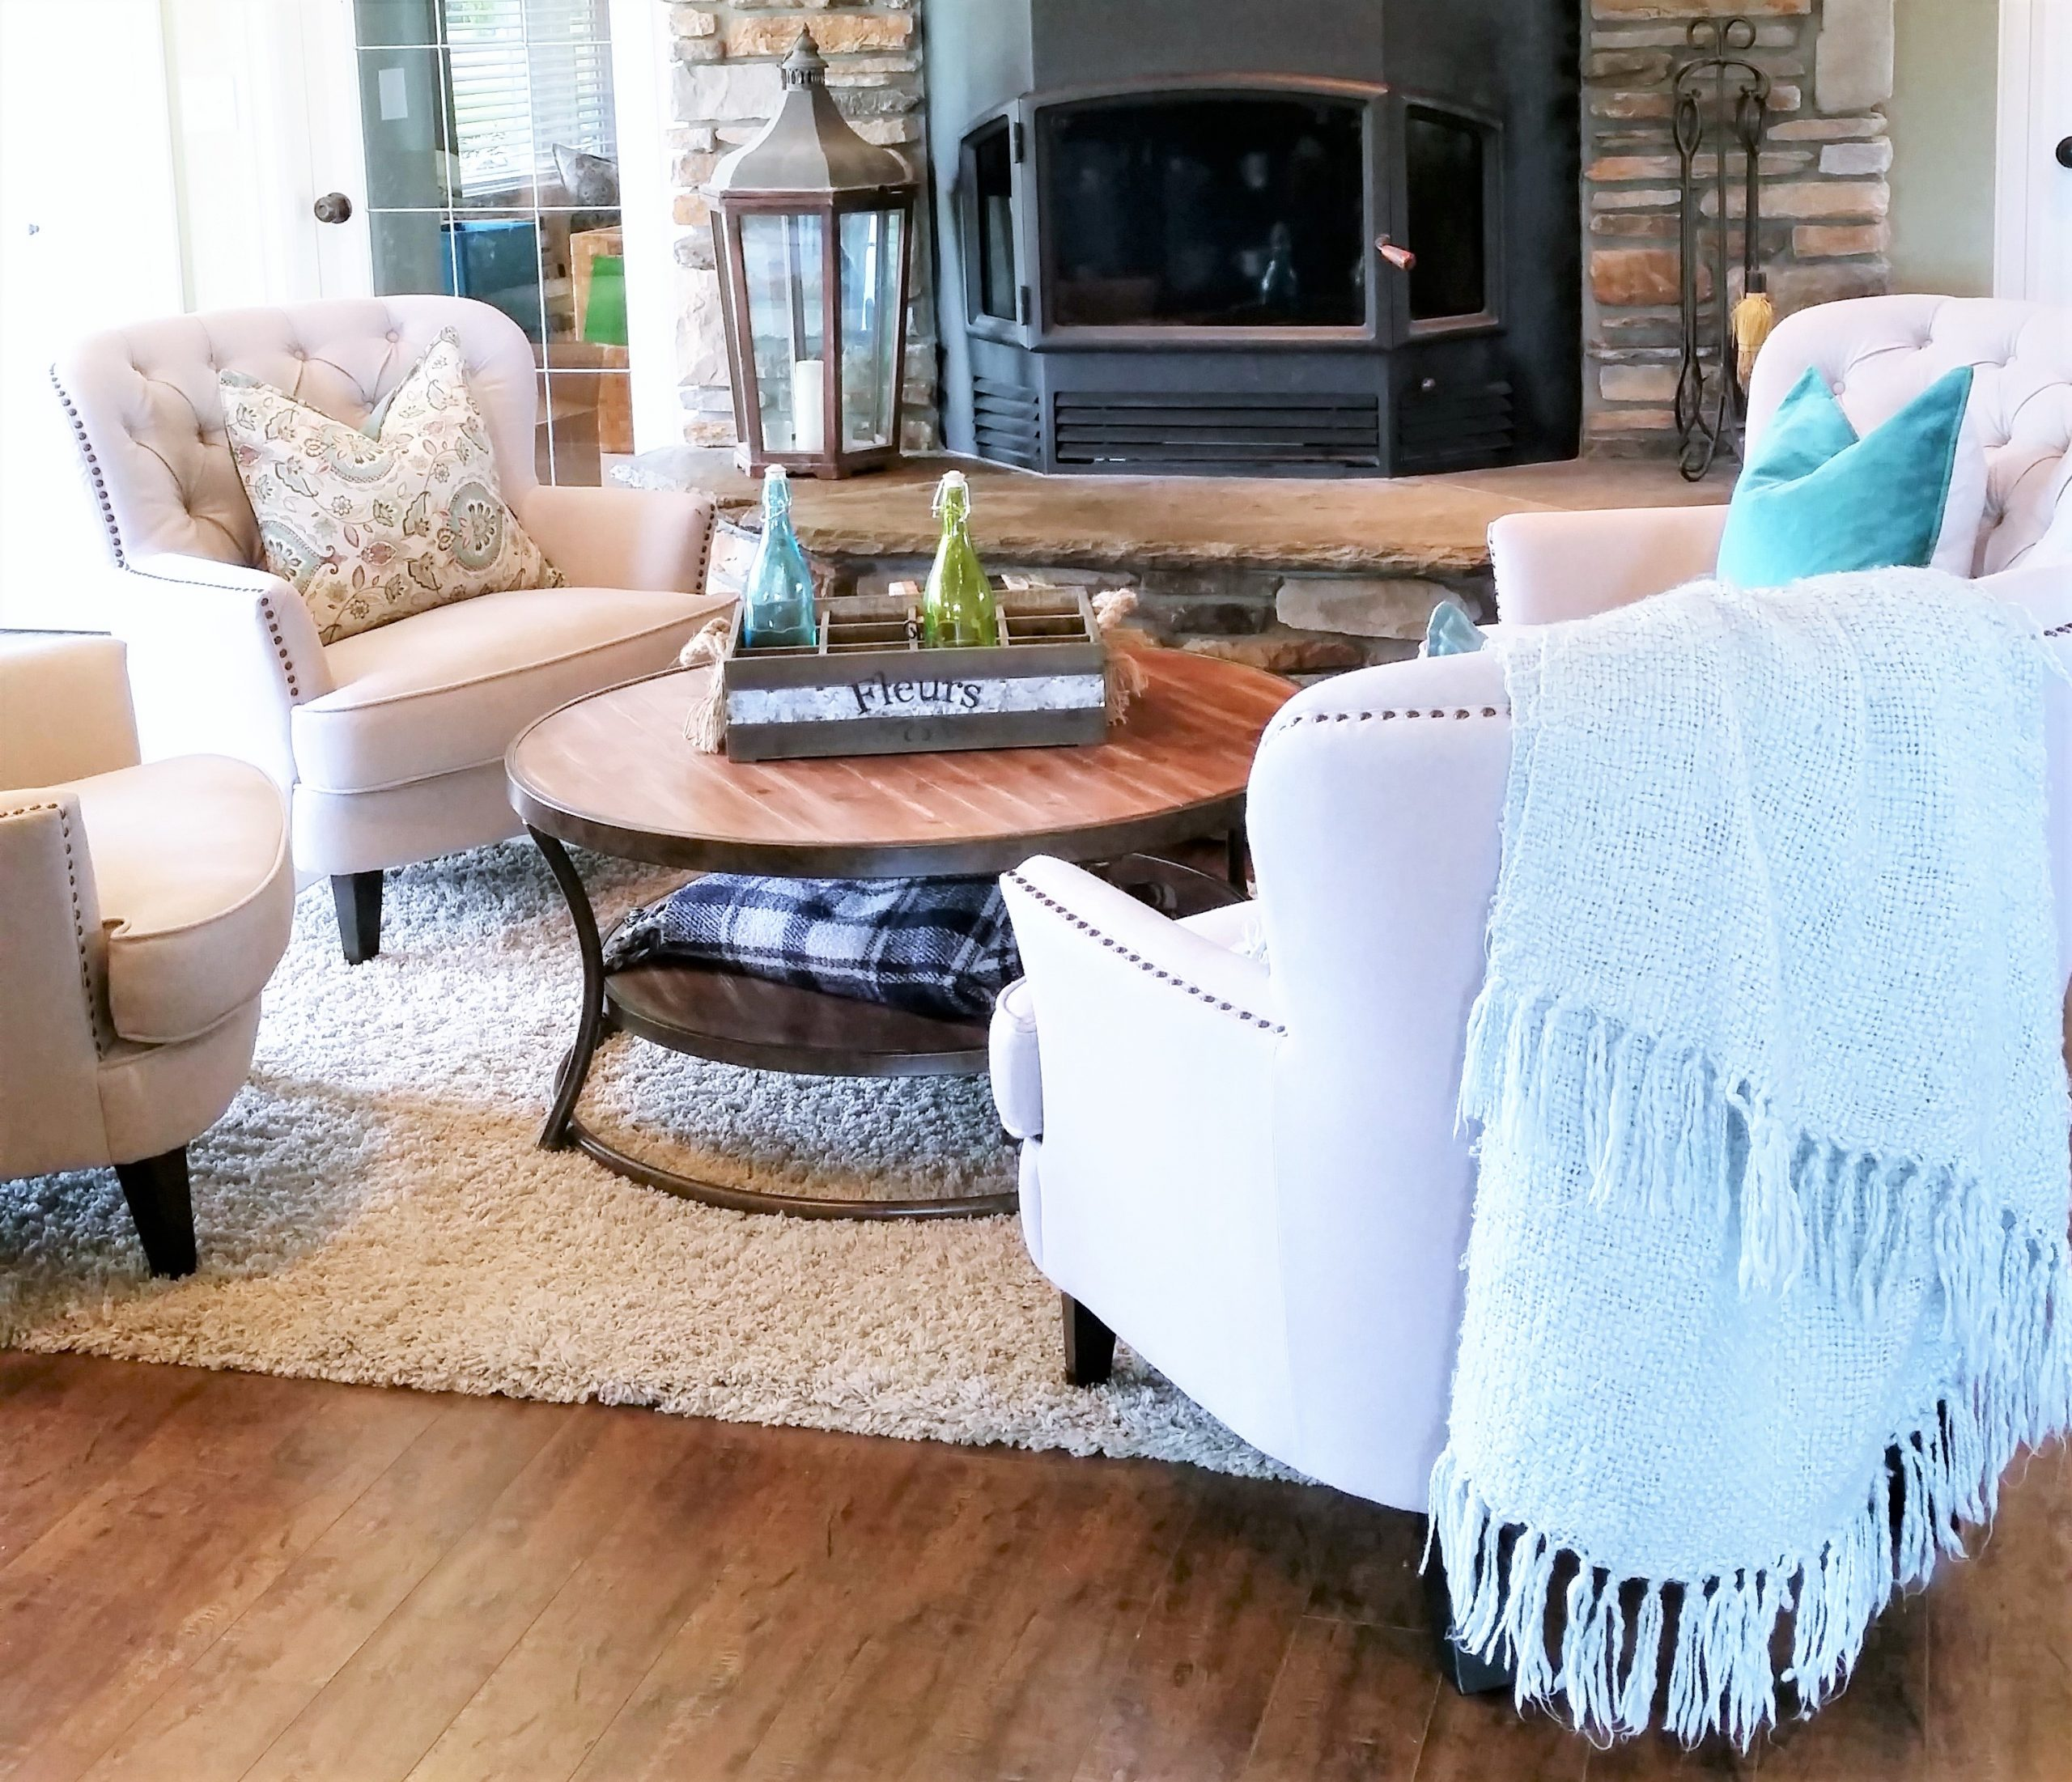 My designer secret steps to redesigning your very own space!